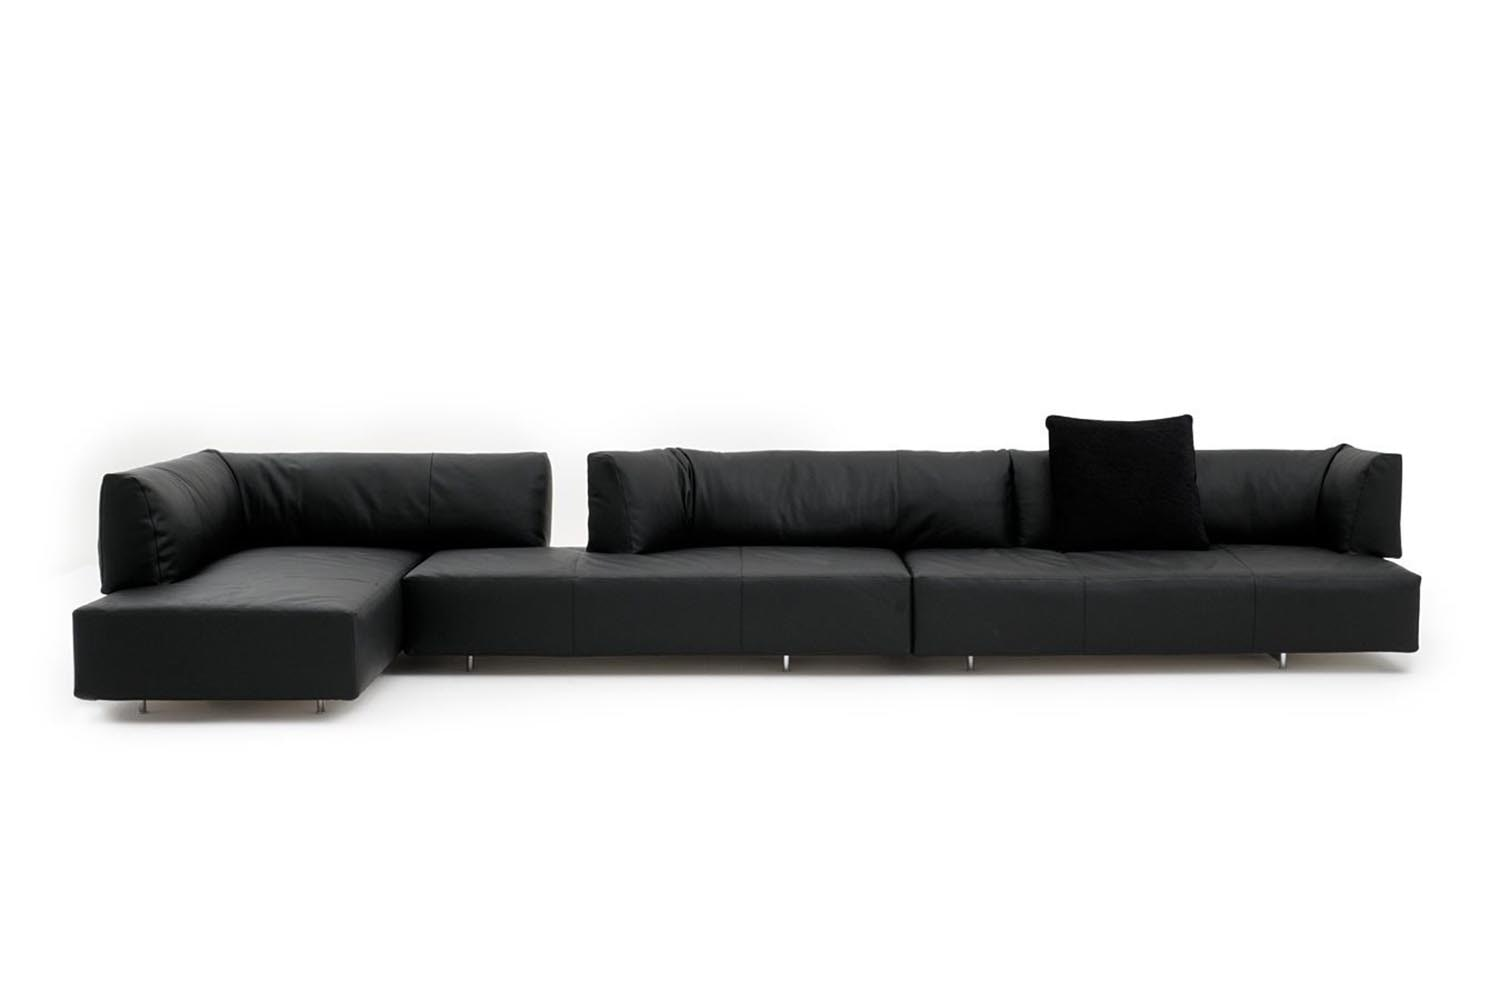 HFST Sofa by Francesco Binfare for Edra